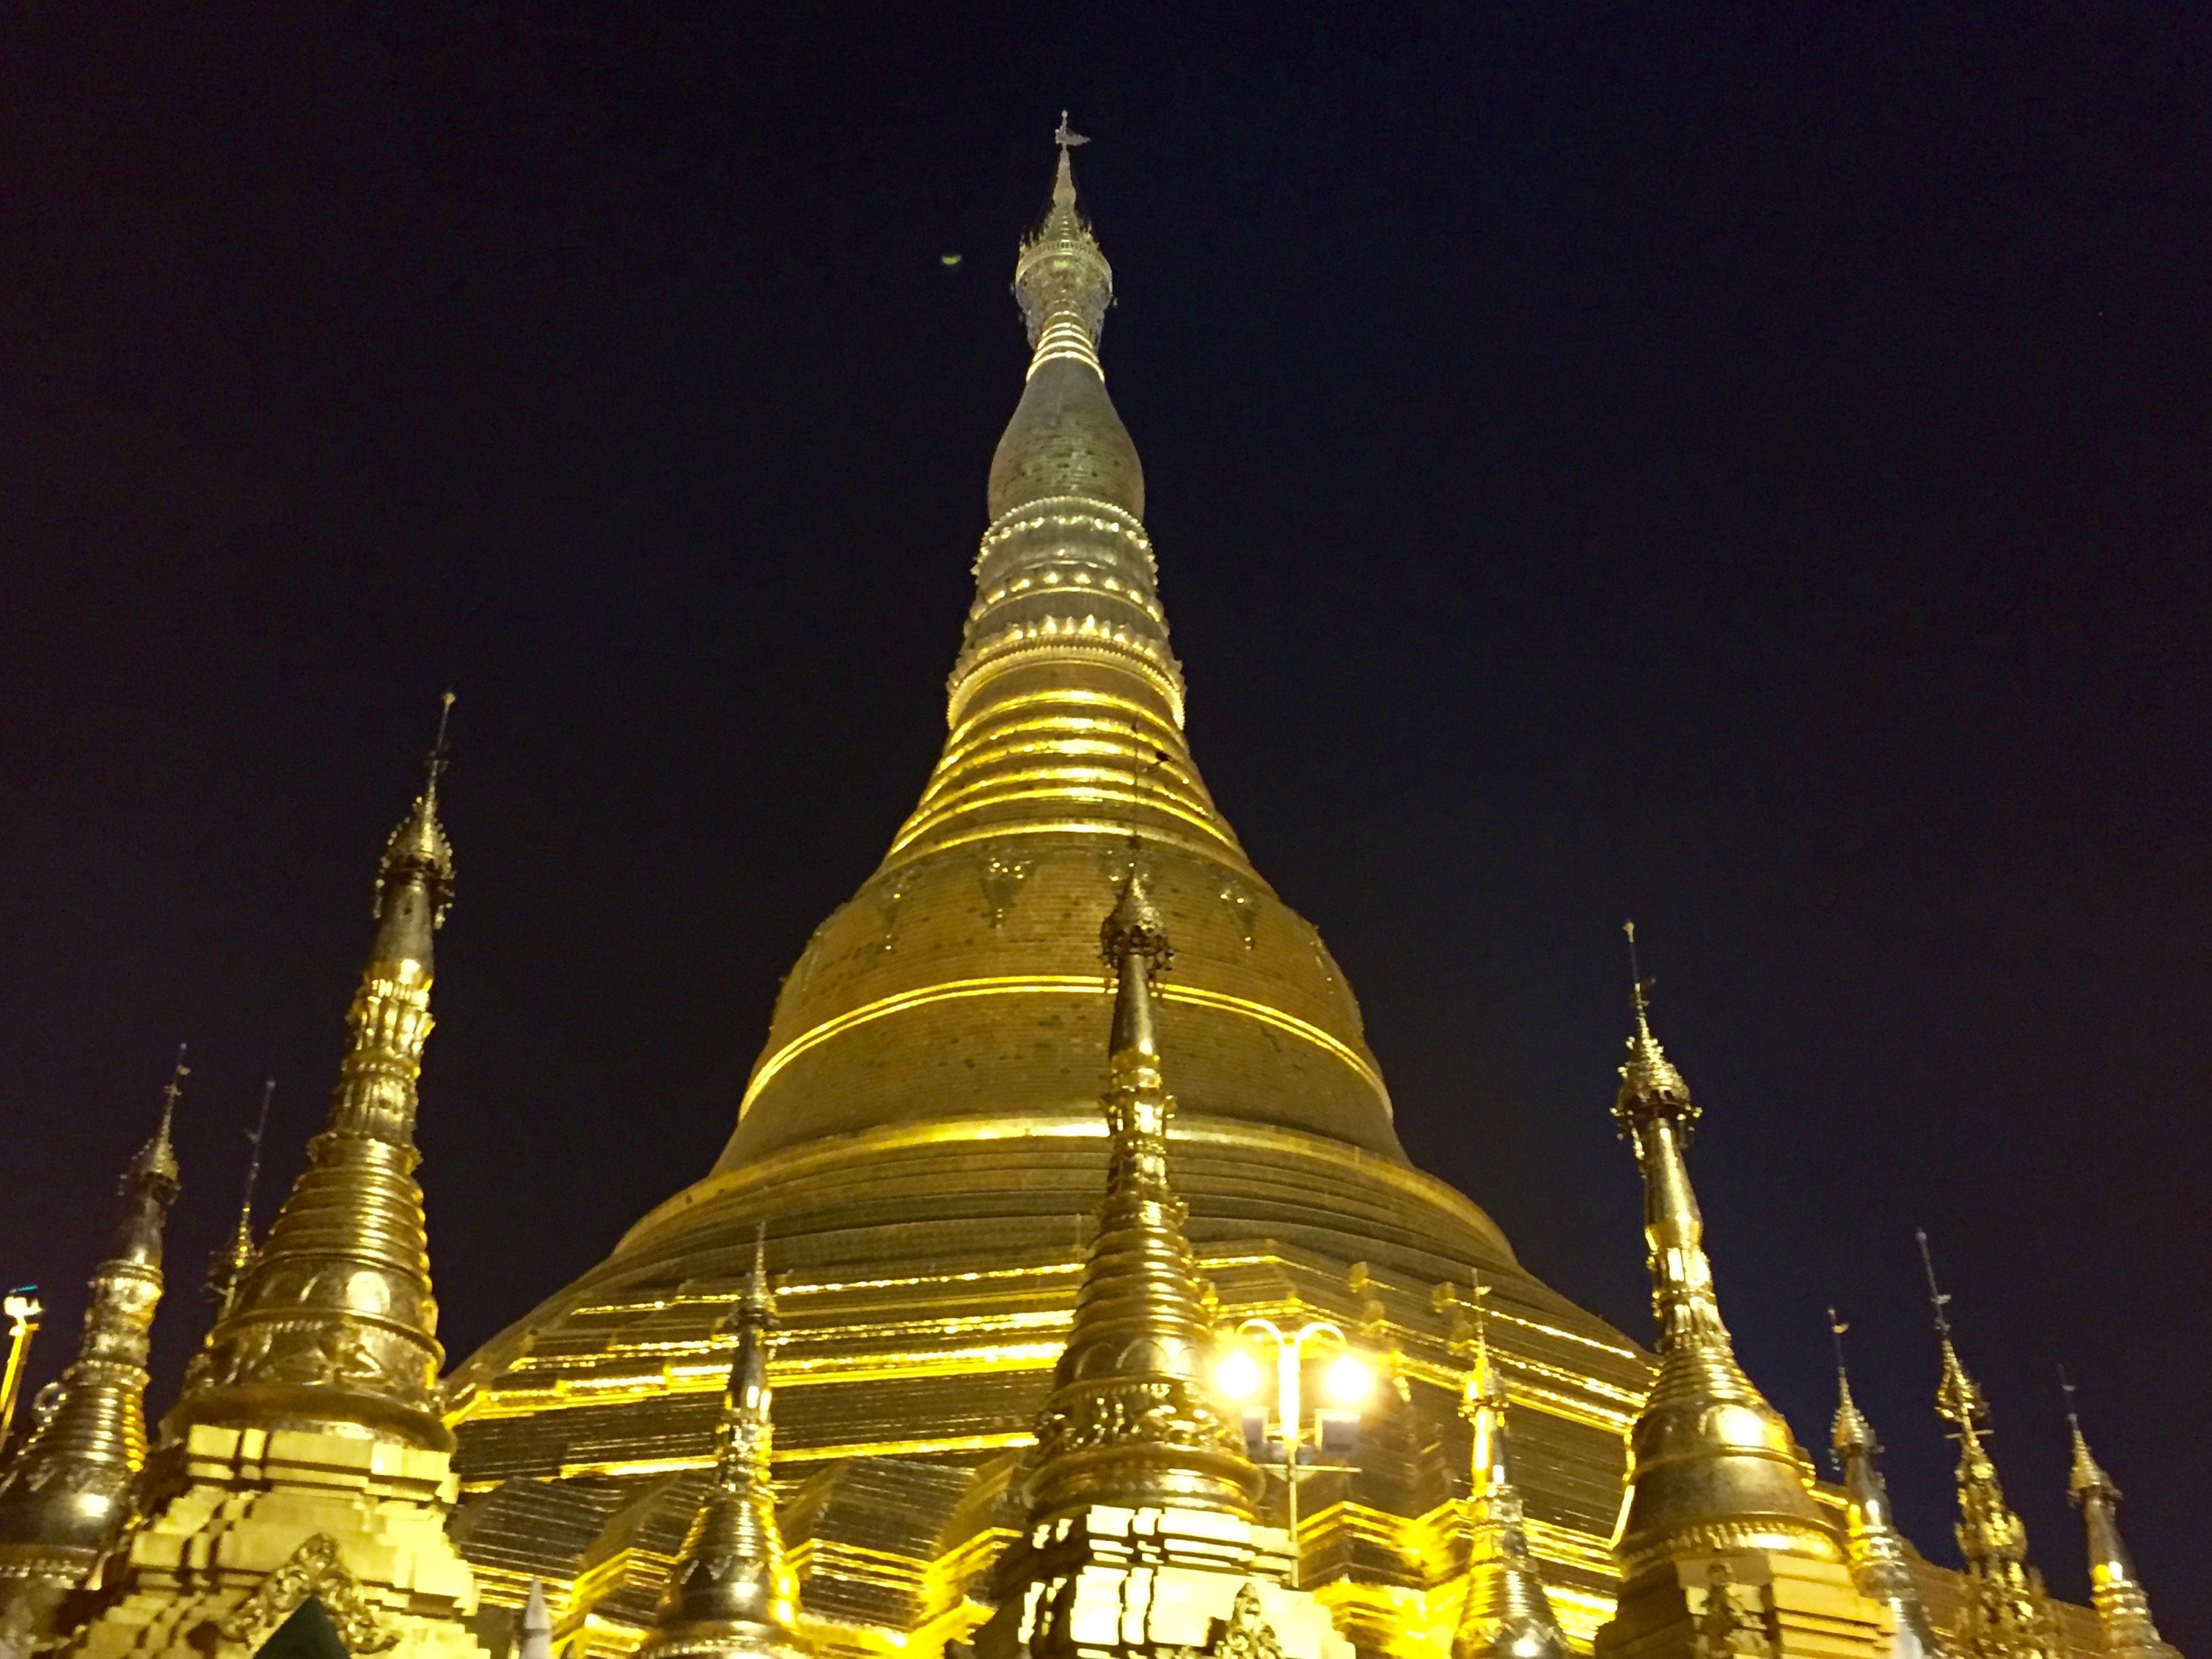 Asian country is called land of the golden pagoda